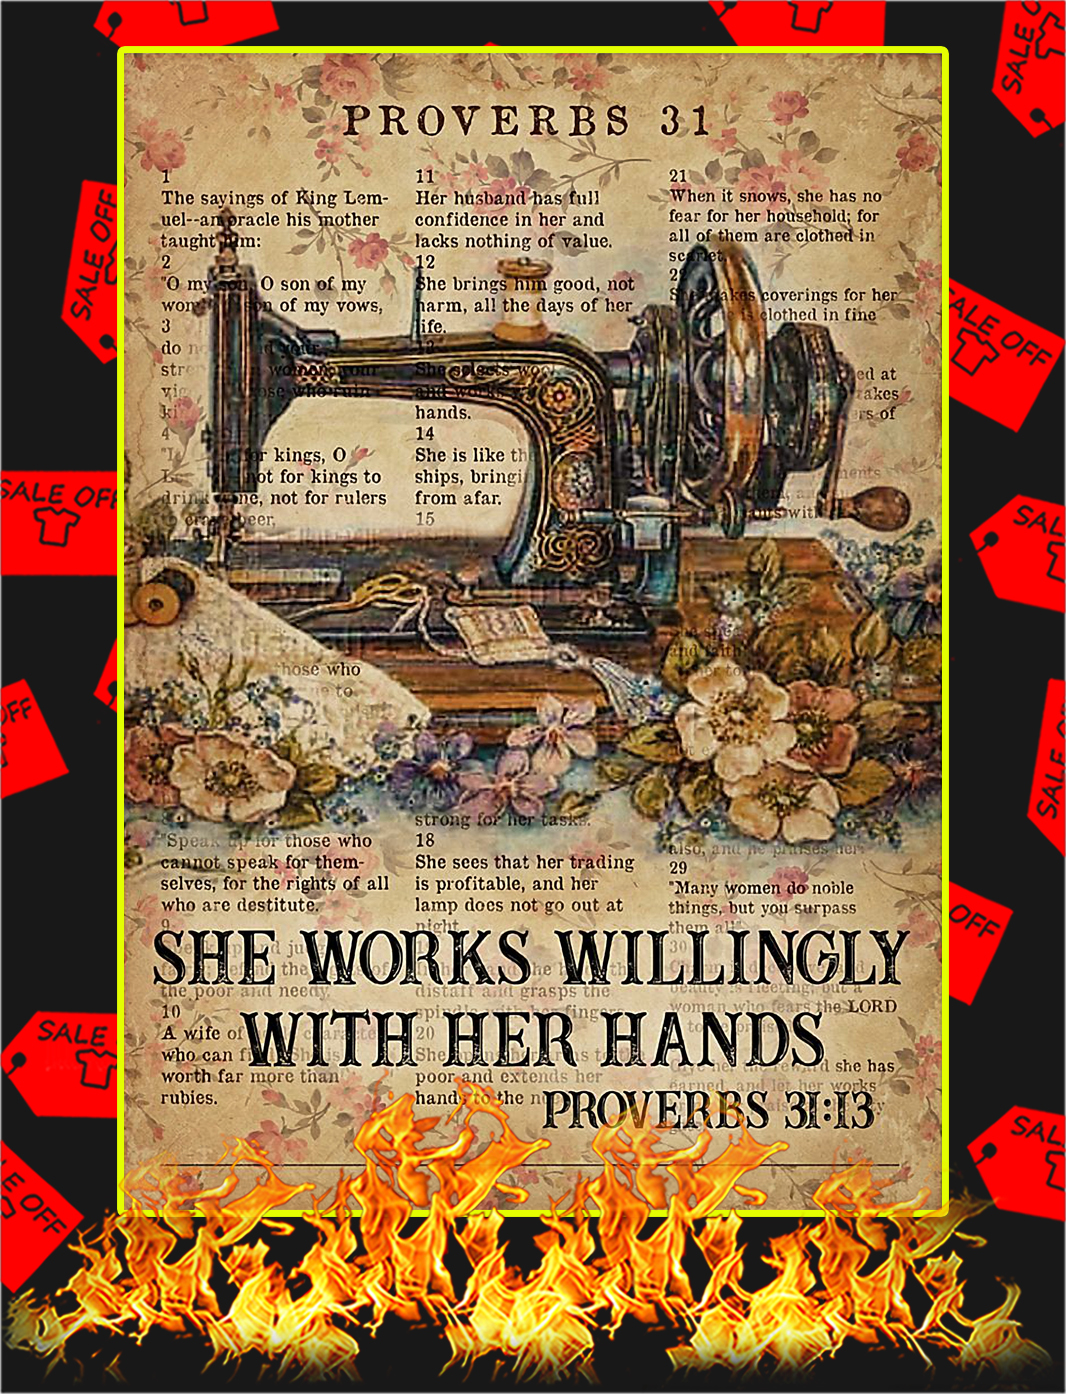 Sewing She works willingly with her hands poster